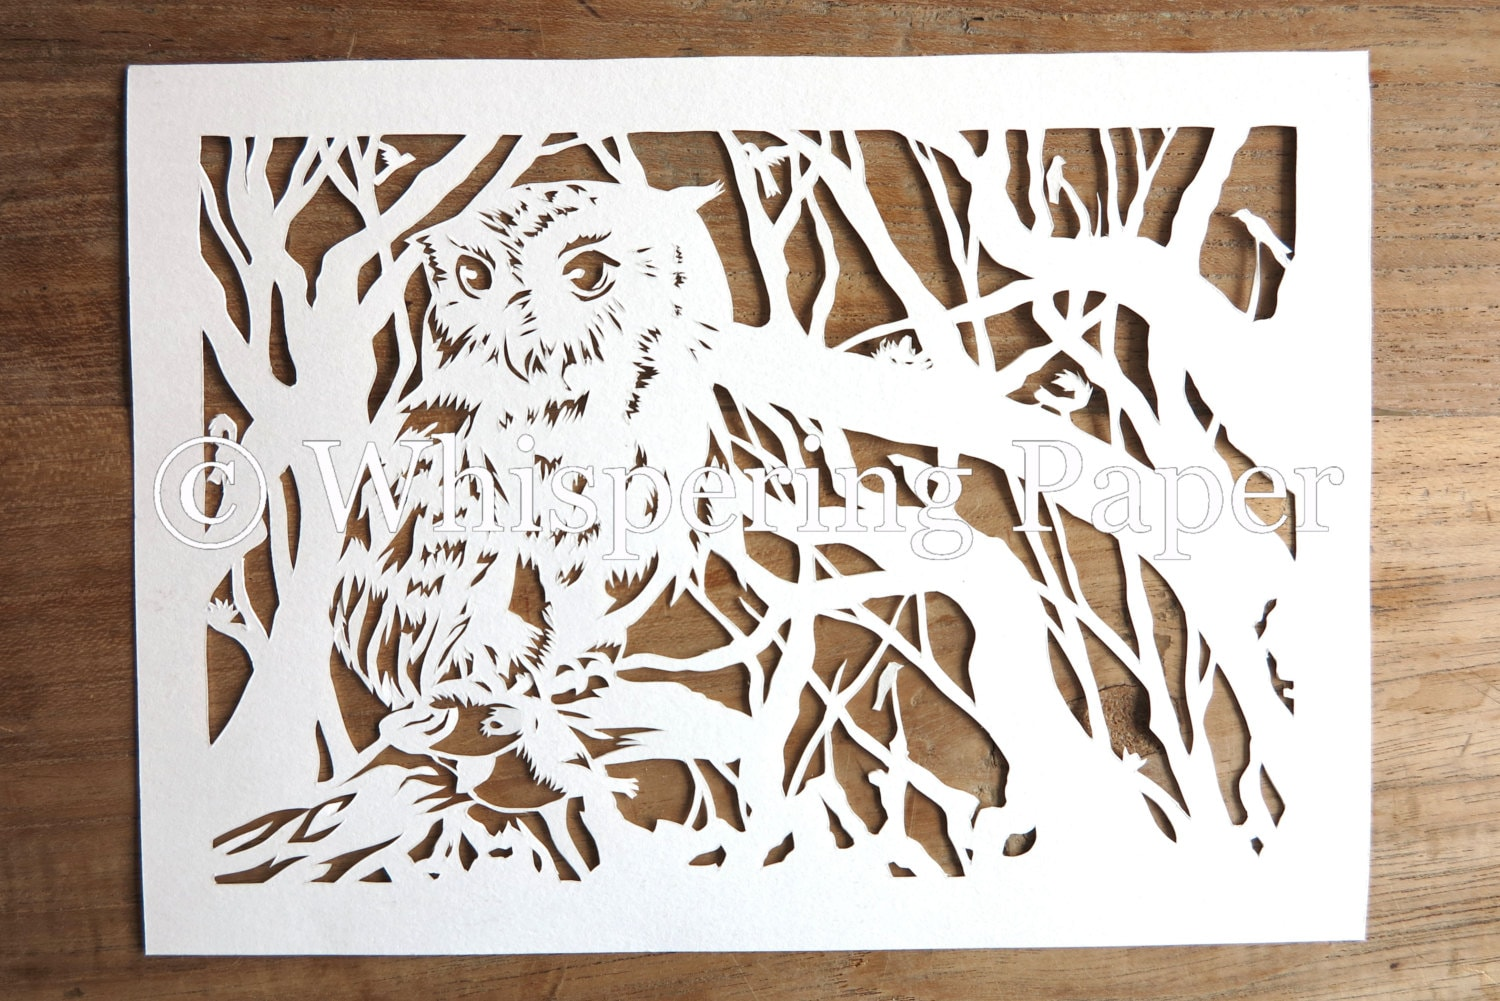 Hand cut paper cut art of an owl in vivacious forest